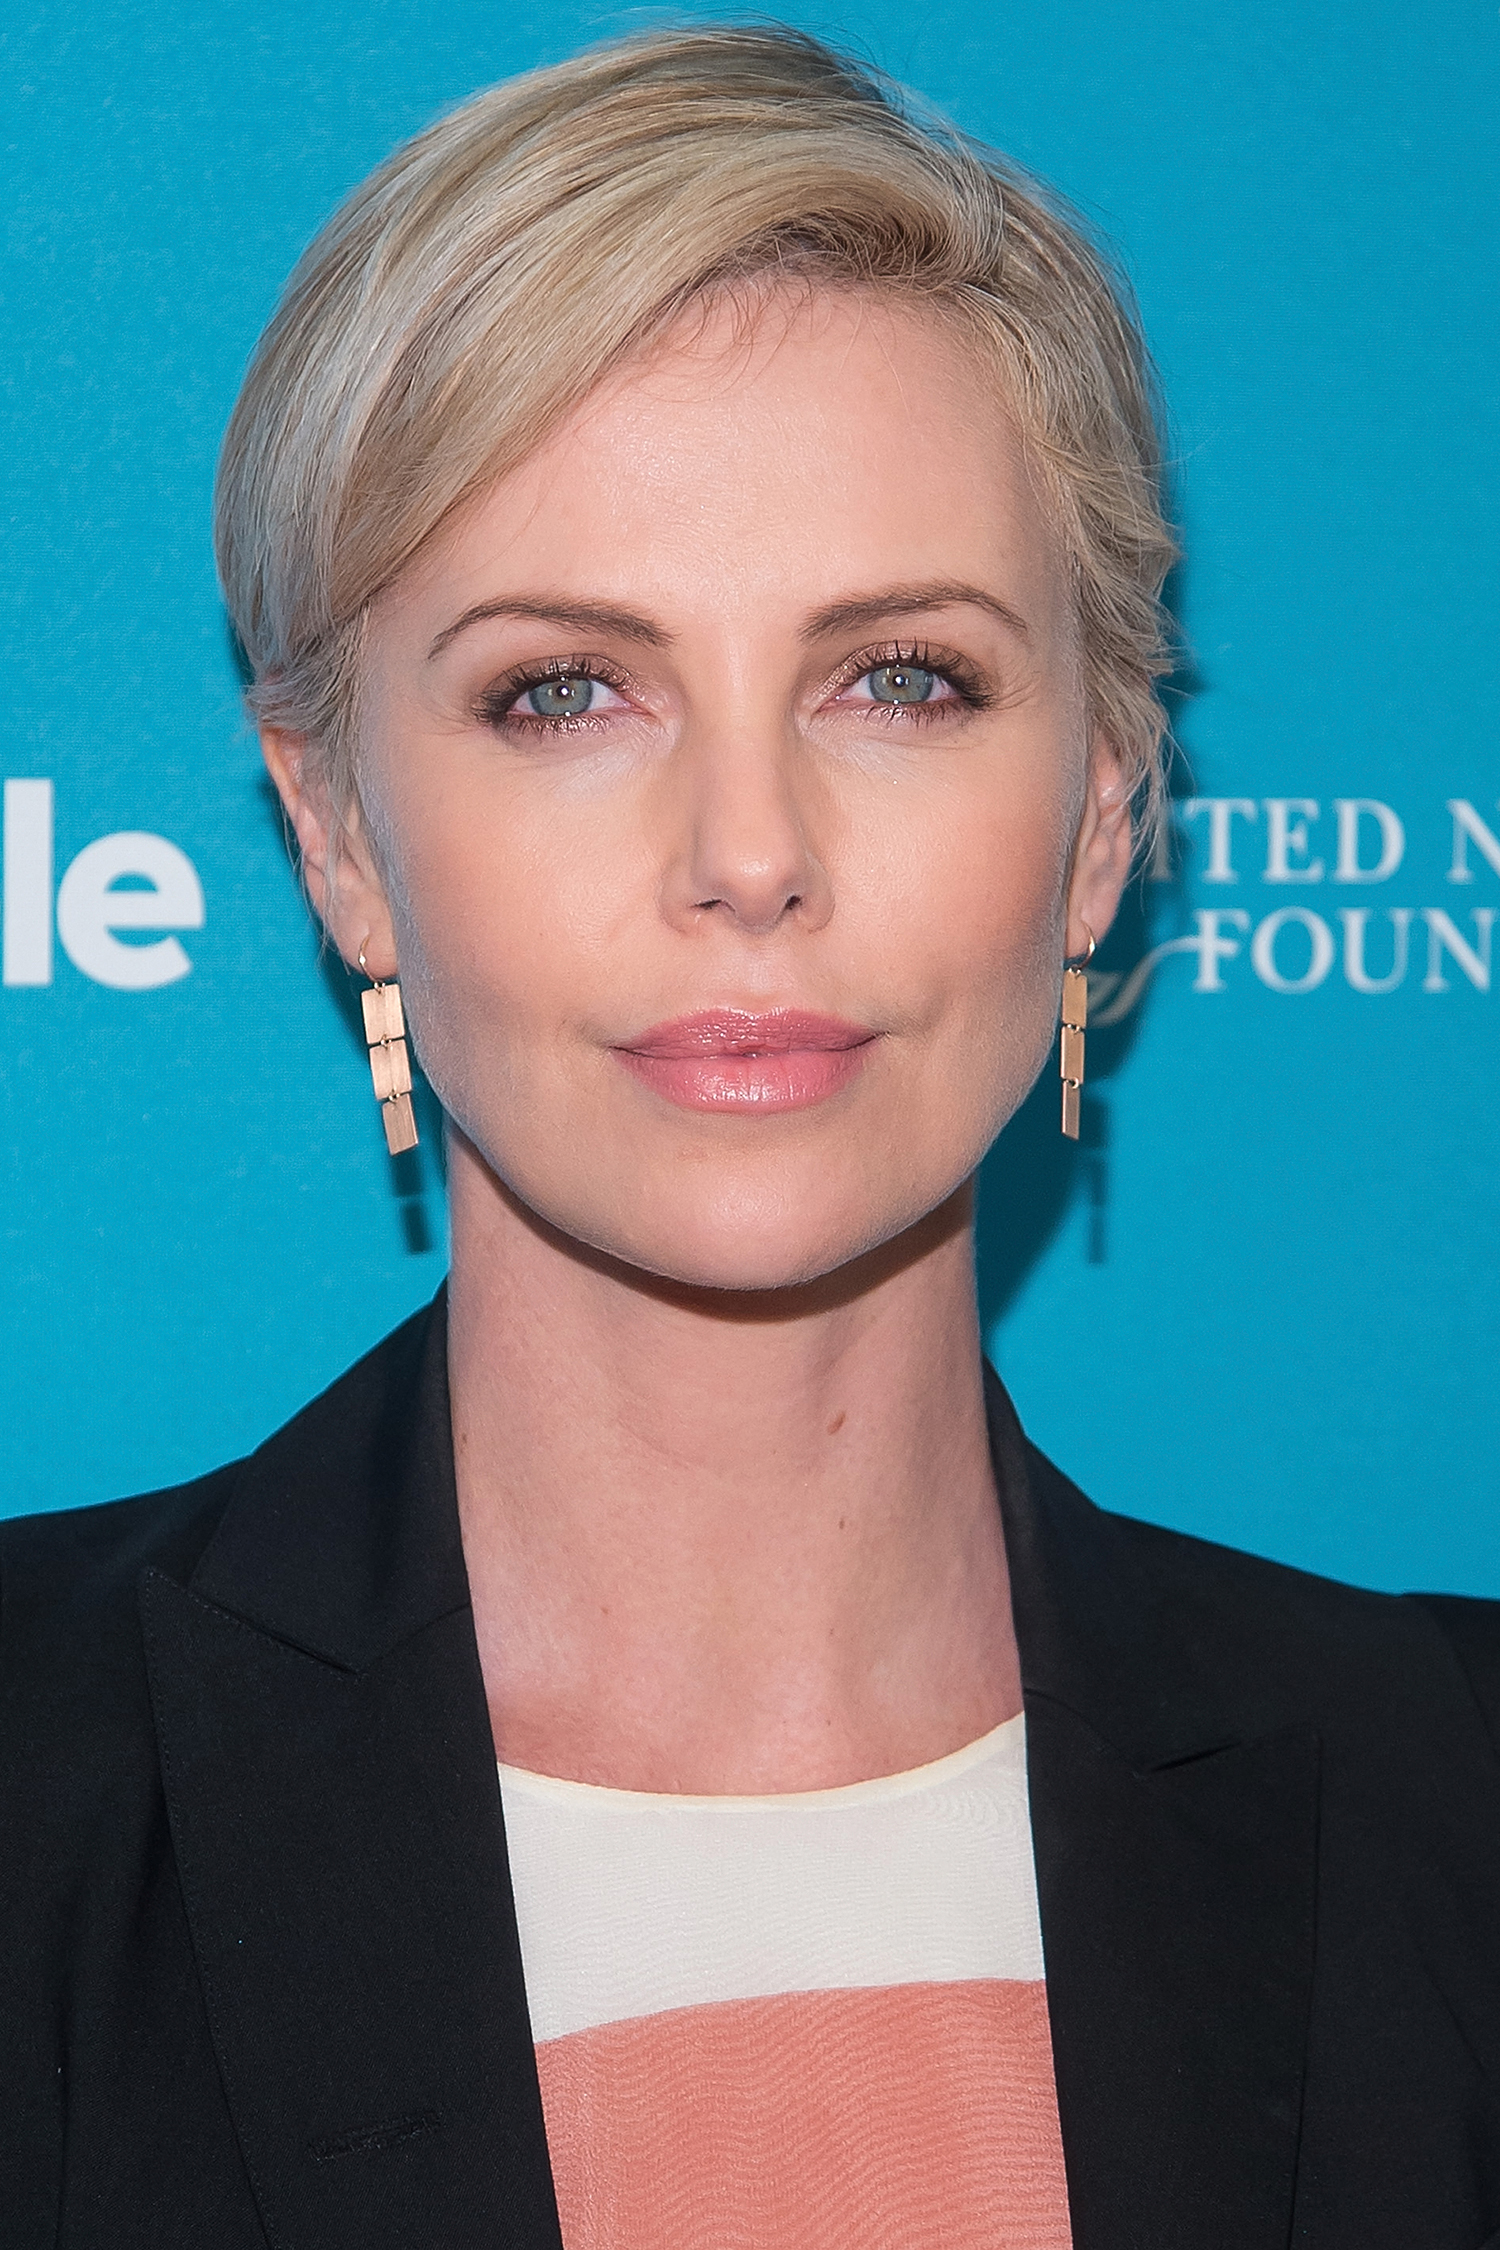 NEW YORK, NY - SEPTEMBER 28:  Actress Charlize Theron attends the 2015 Social Good Summit - Day 2 at 92Y on September 28, 2015 in New York City.  (Photo by Michael Stewart/WireImage)